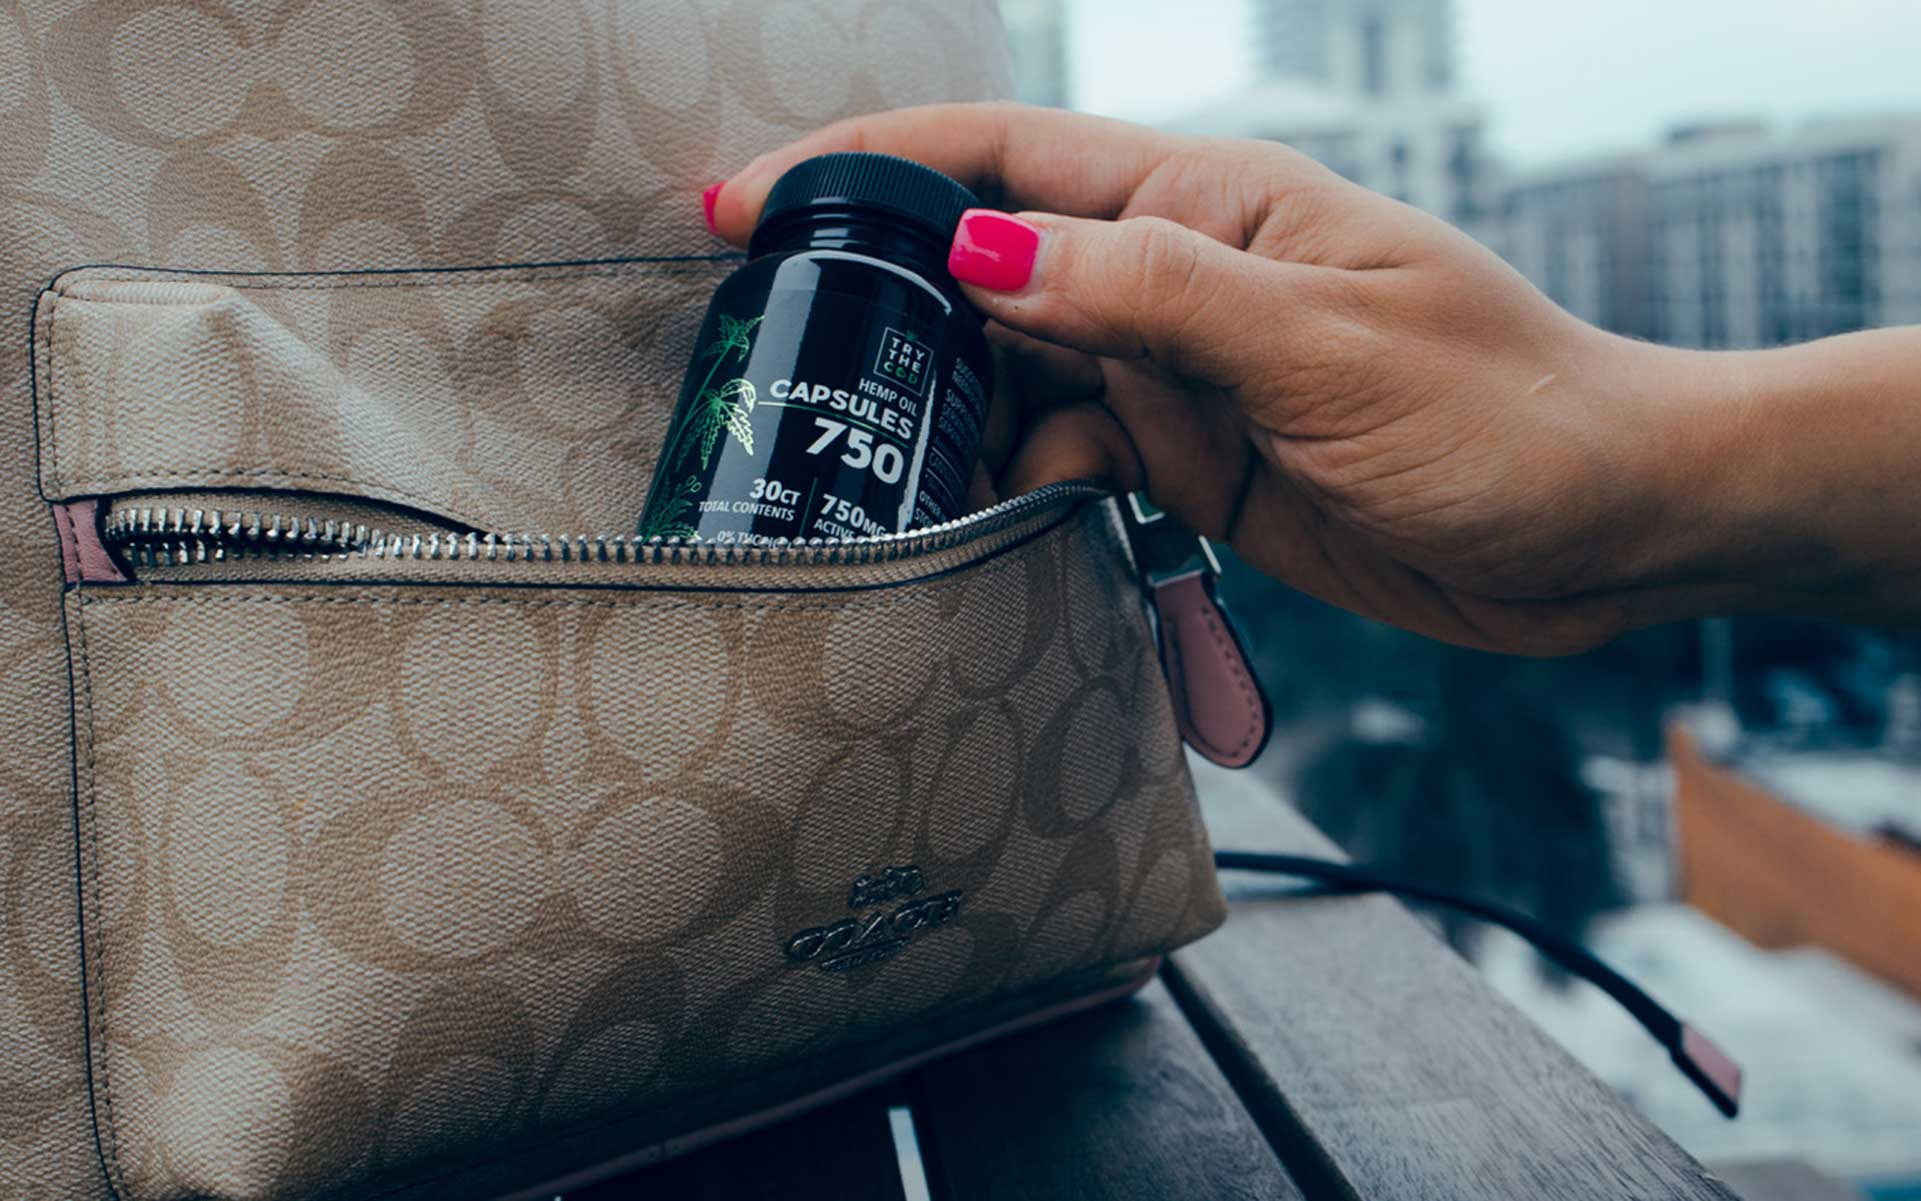 Woman pulling Try the CBD capsules out of her purse